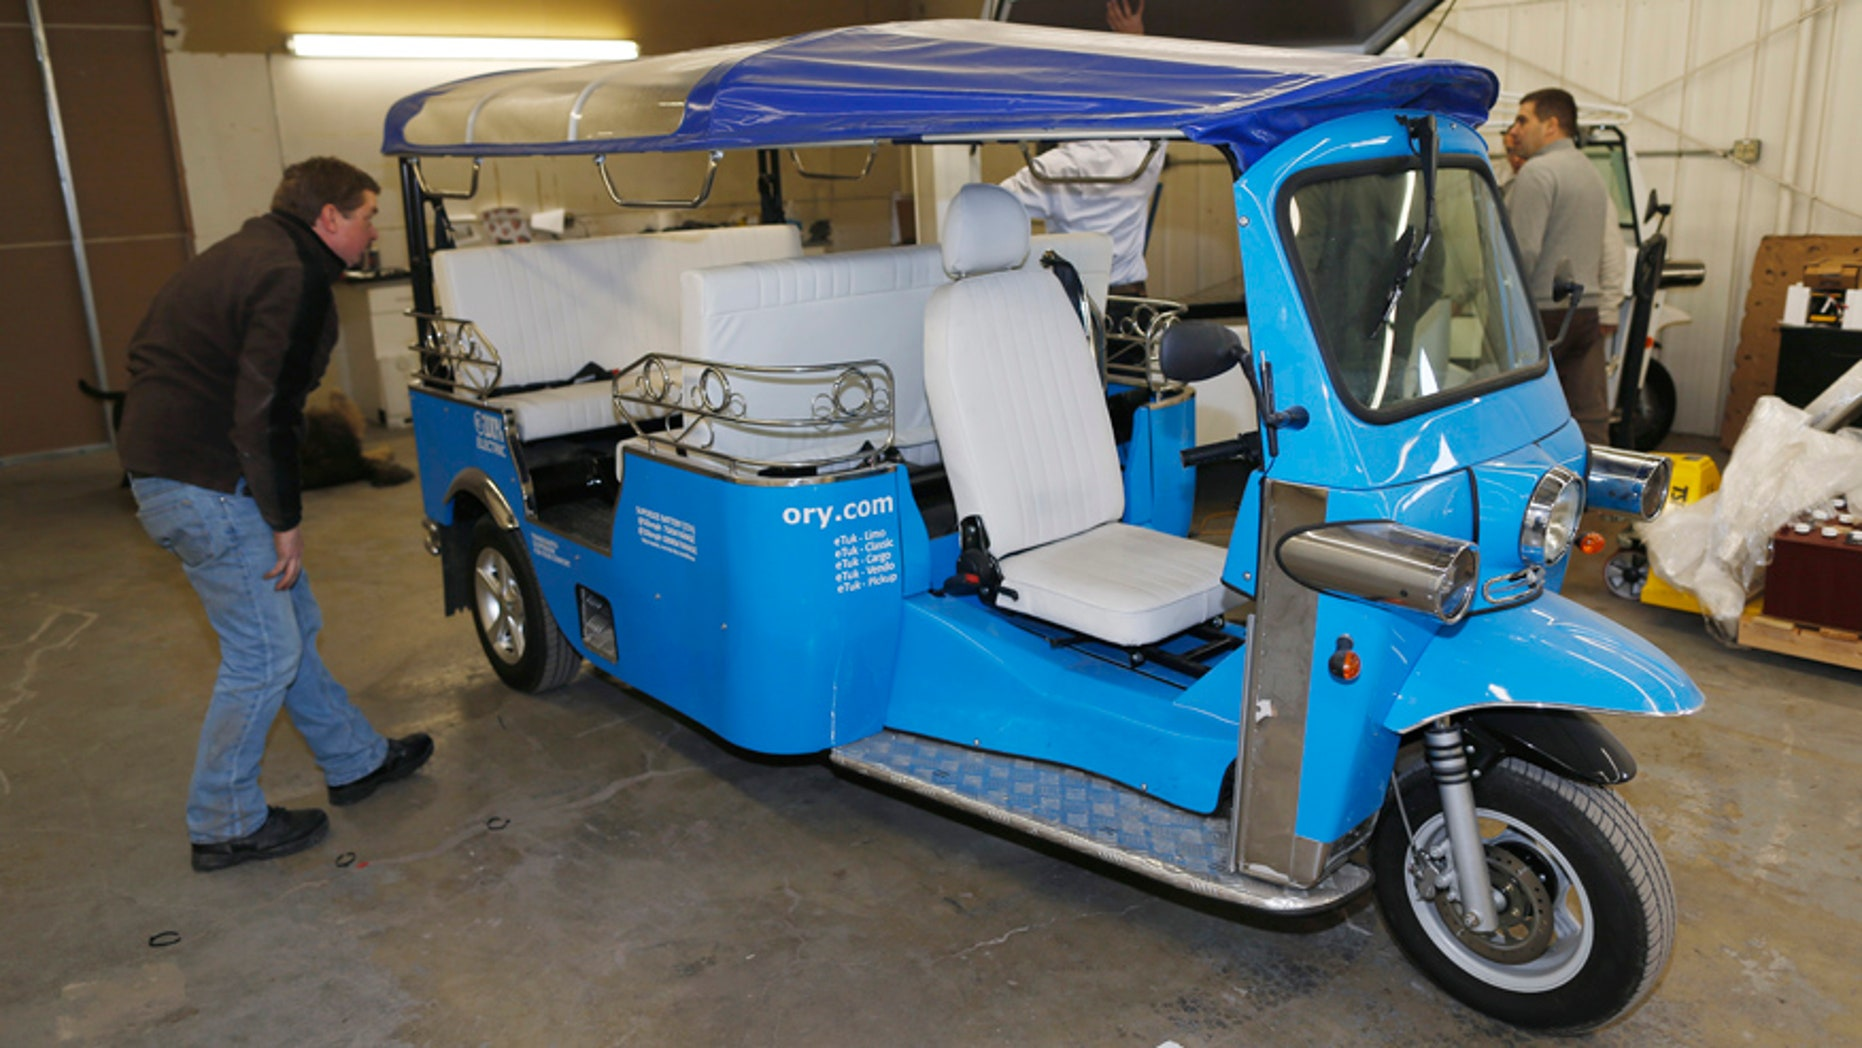 In this photo taken Friday, Feb. 27, 2015, a worker checks the roof on an electric Tuk-Tuk being prepared for export at the Denver eTuk factory in northeast Denver. The Tuk Tuk Factory, based in Amsterdam, has signed a licensing agreement with Denver-based eTuk USA to allow the company to manufacture and sell an electric version of the vehicle. The companys founders hope the eco-friendly vehicles, a far cry from the loud, pollution-spewing versions common in Asia and South America, will become the next hip mode of transportation for urban dwellers and tourists across the country. (AP Photo/David Zalubowski)